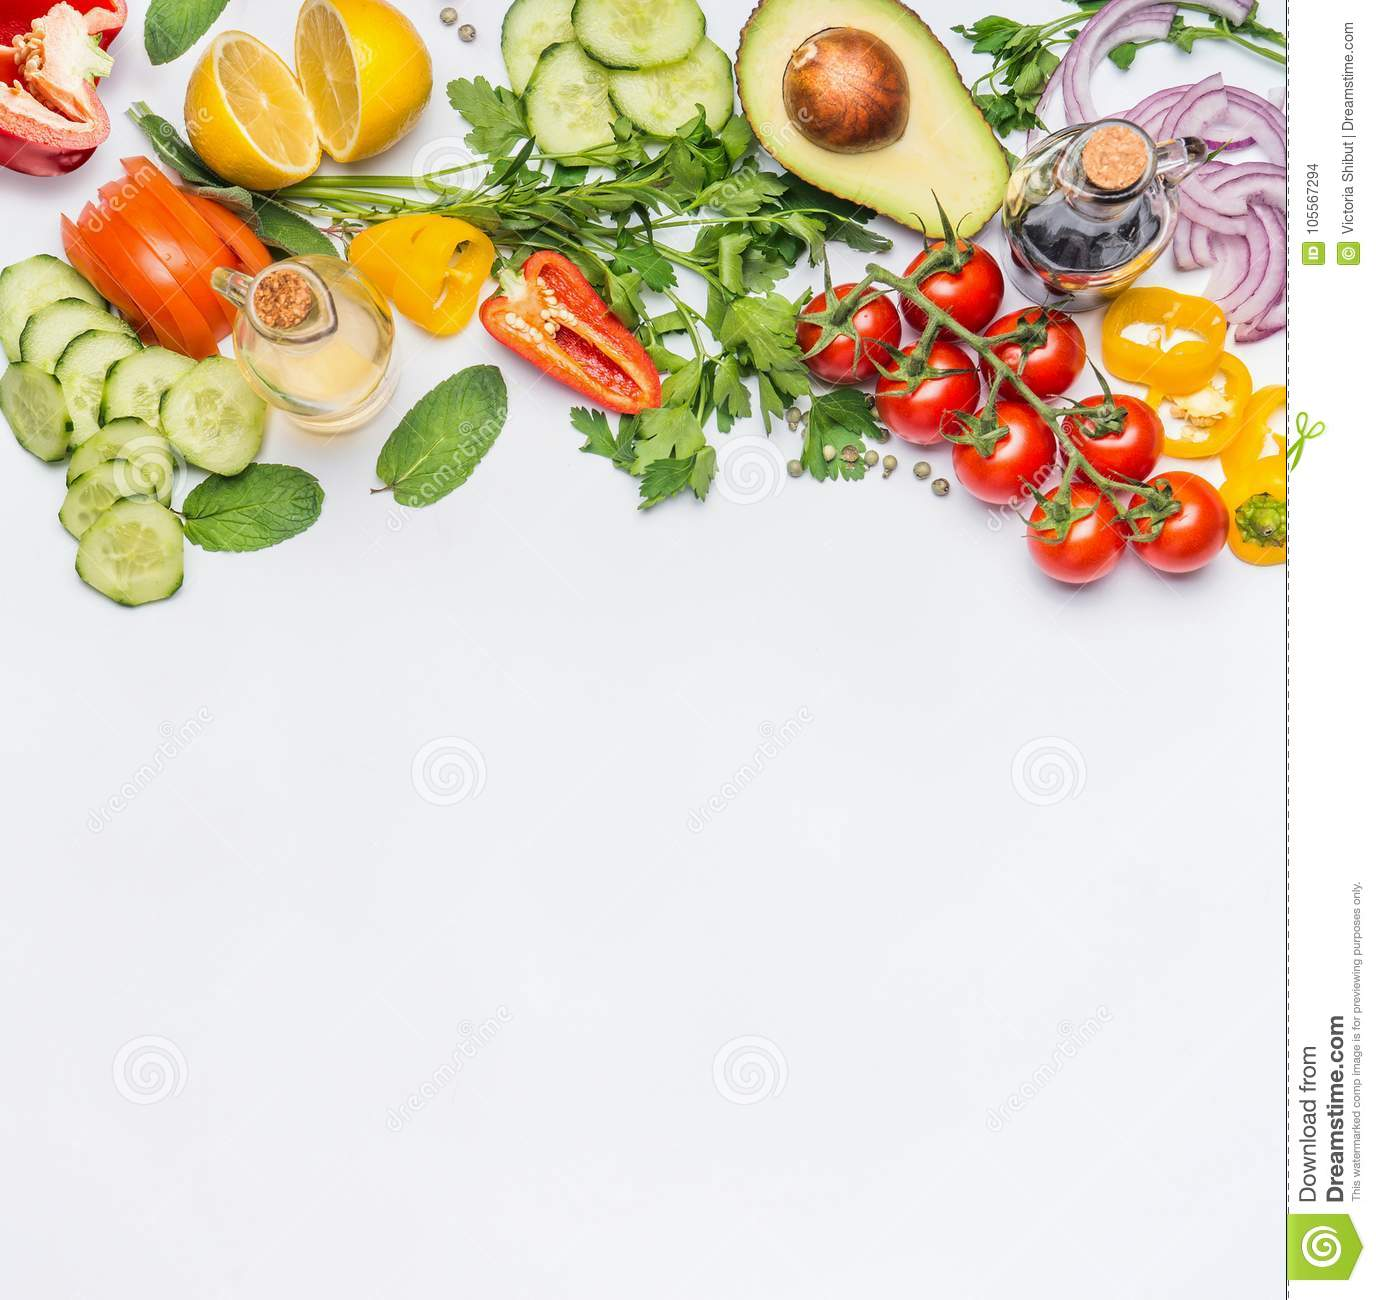 Healthy clean eating layout, vegetarian food and diet nutrition concept. Various fresh vegetables ingredients for salad